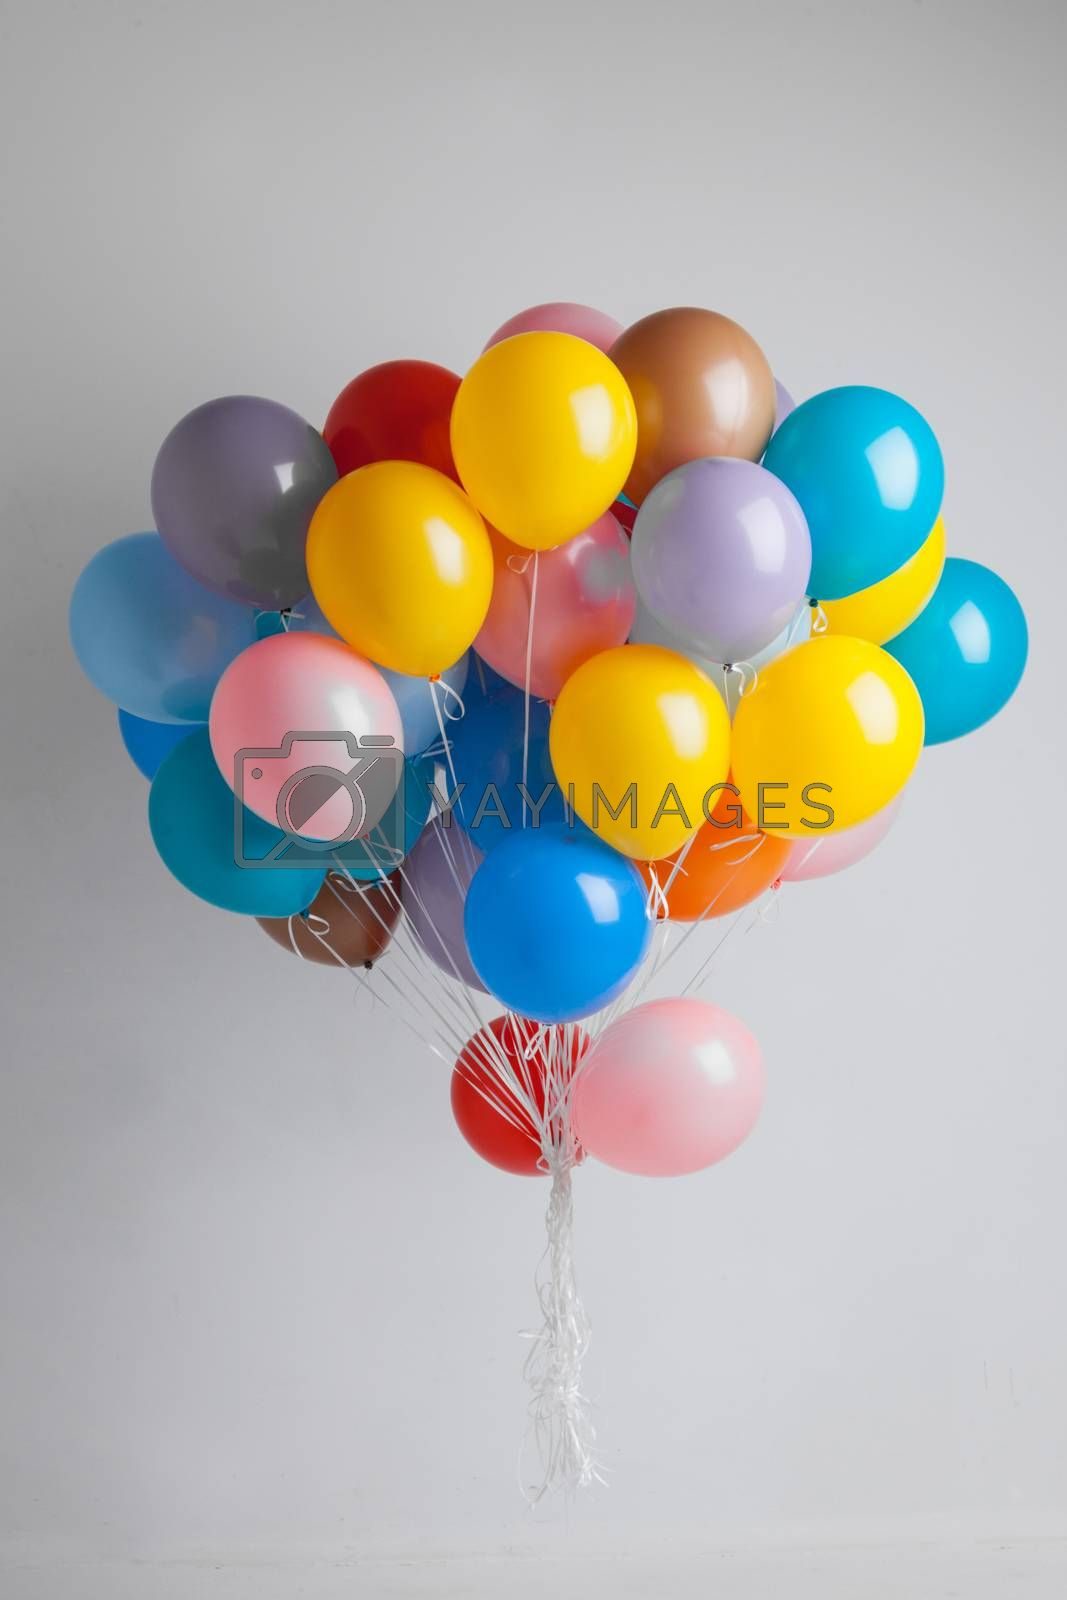 Bunch of many colorful balloons birthday party gift concept